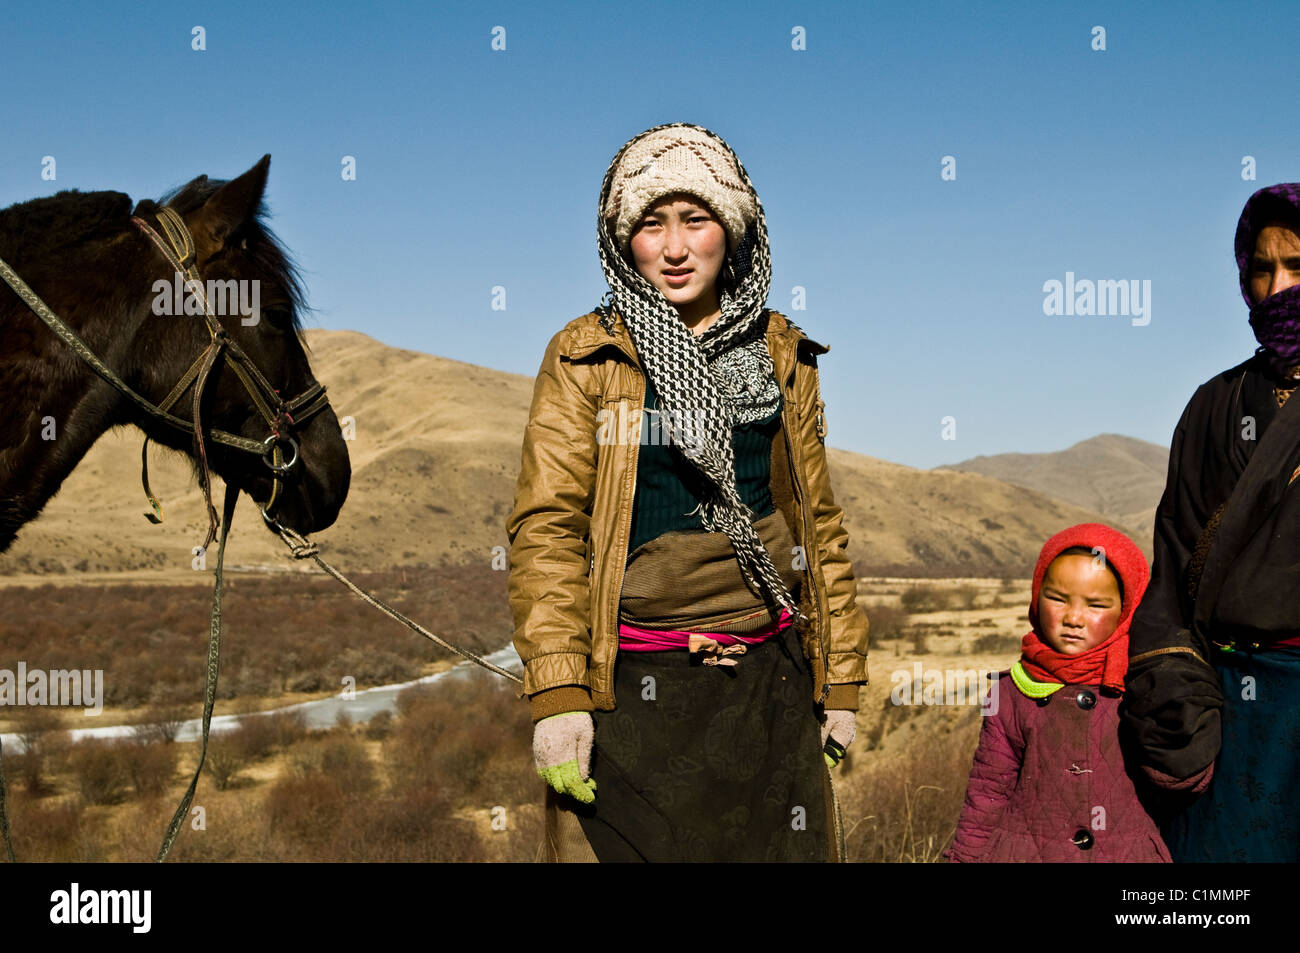 Faces of Tibet. - Stock Image